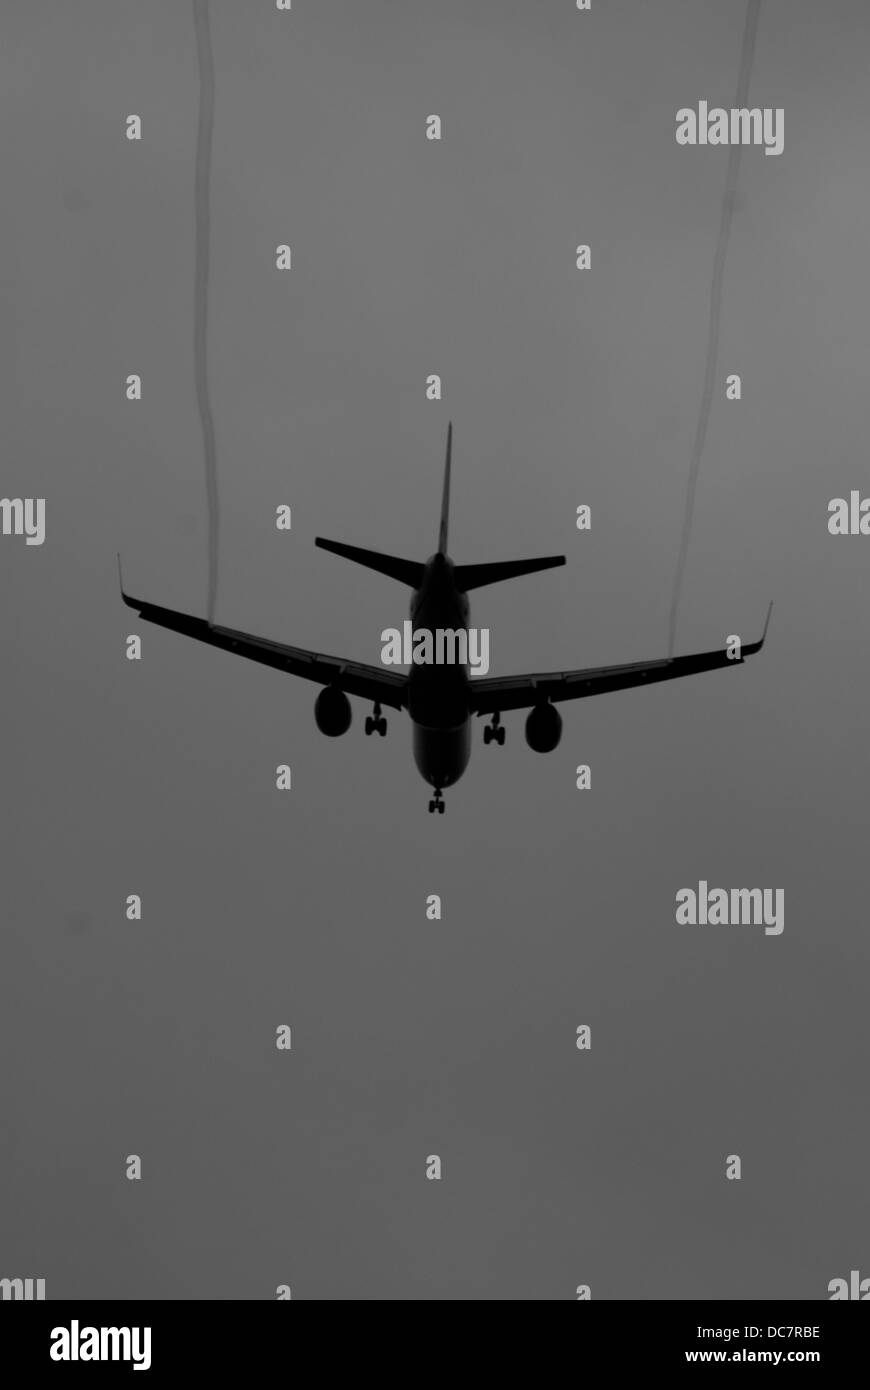 Aircraft on final approach showing wake trails - Stock Image